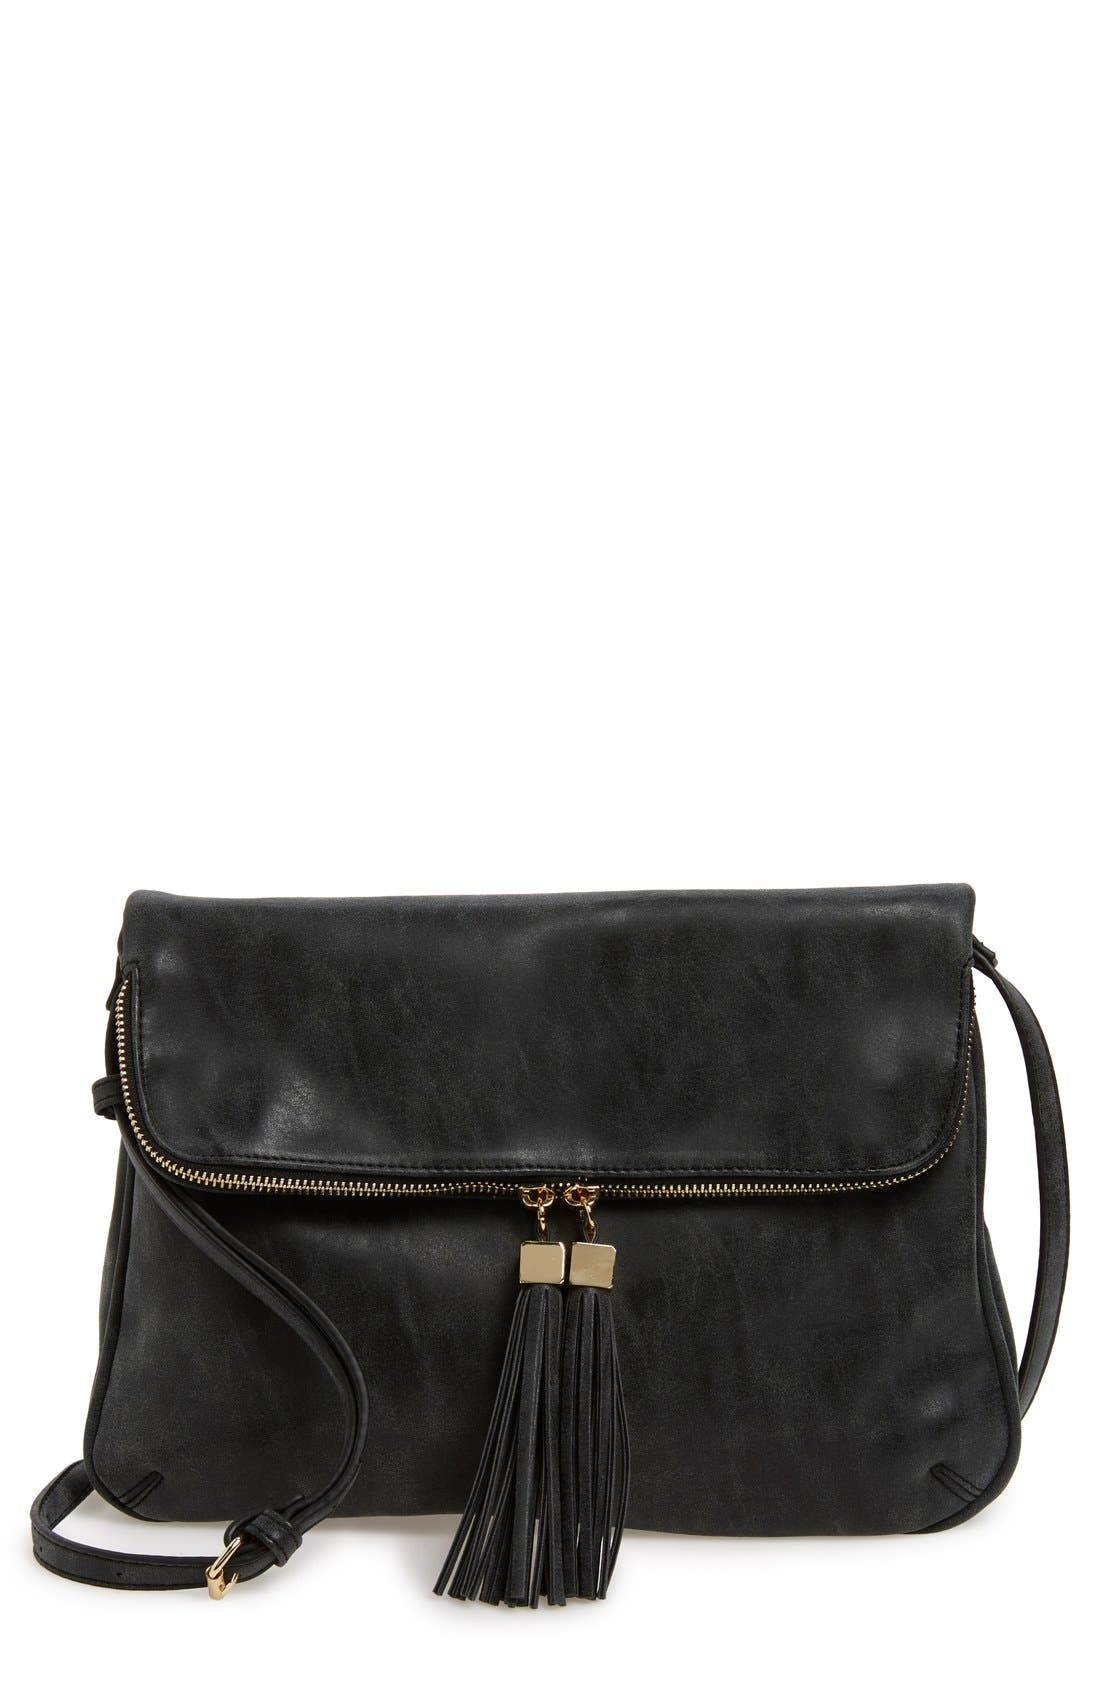 Main Image - Emperia 'Layla' Faux Leather Tassel Flap Crossbody Bag